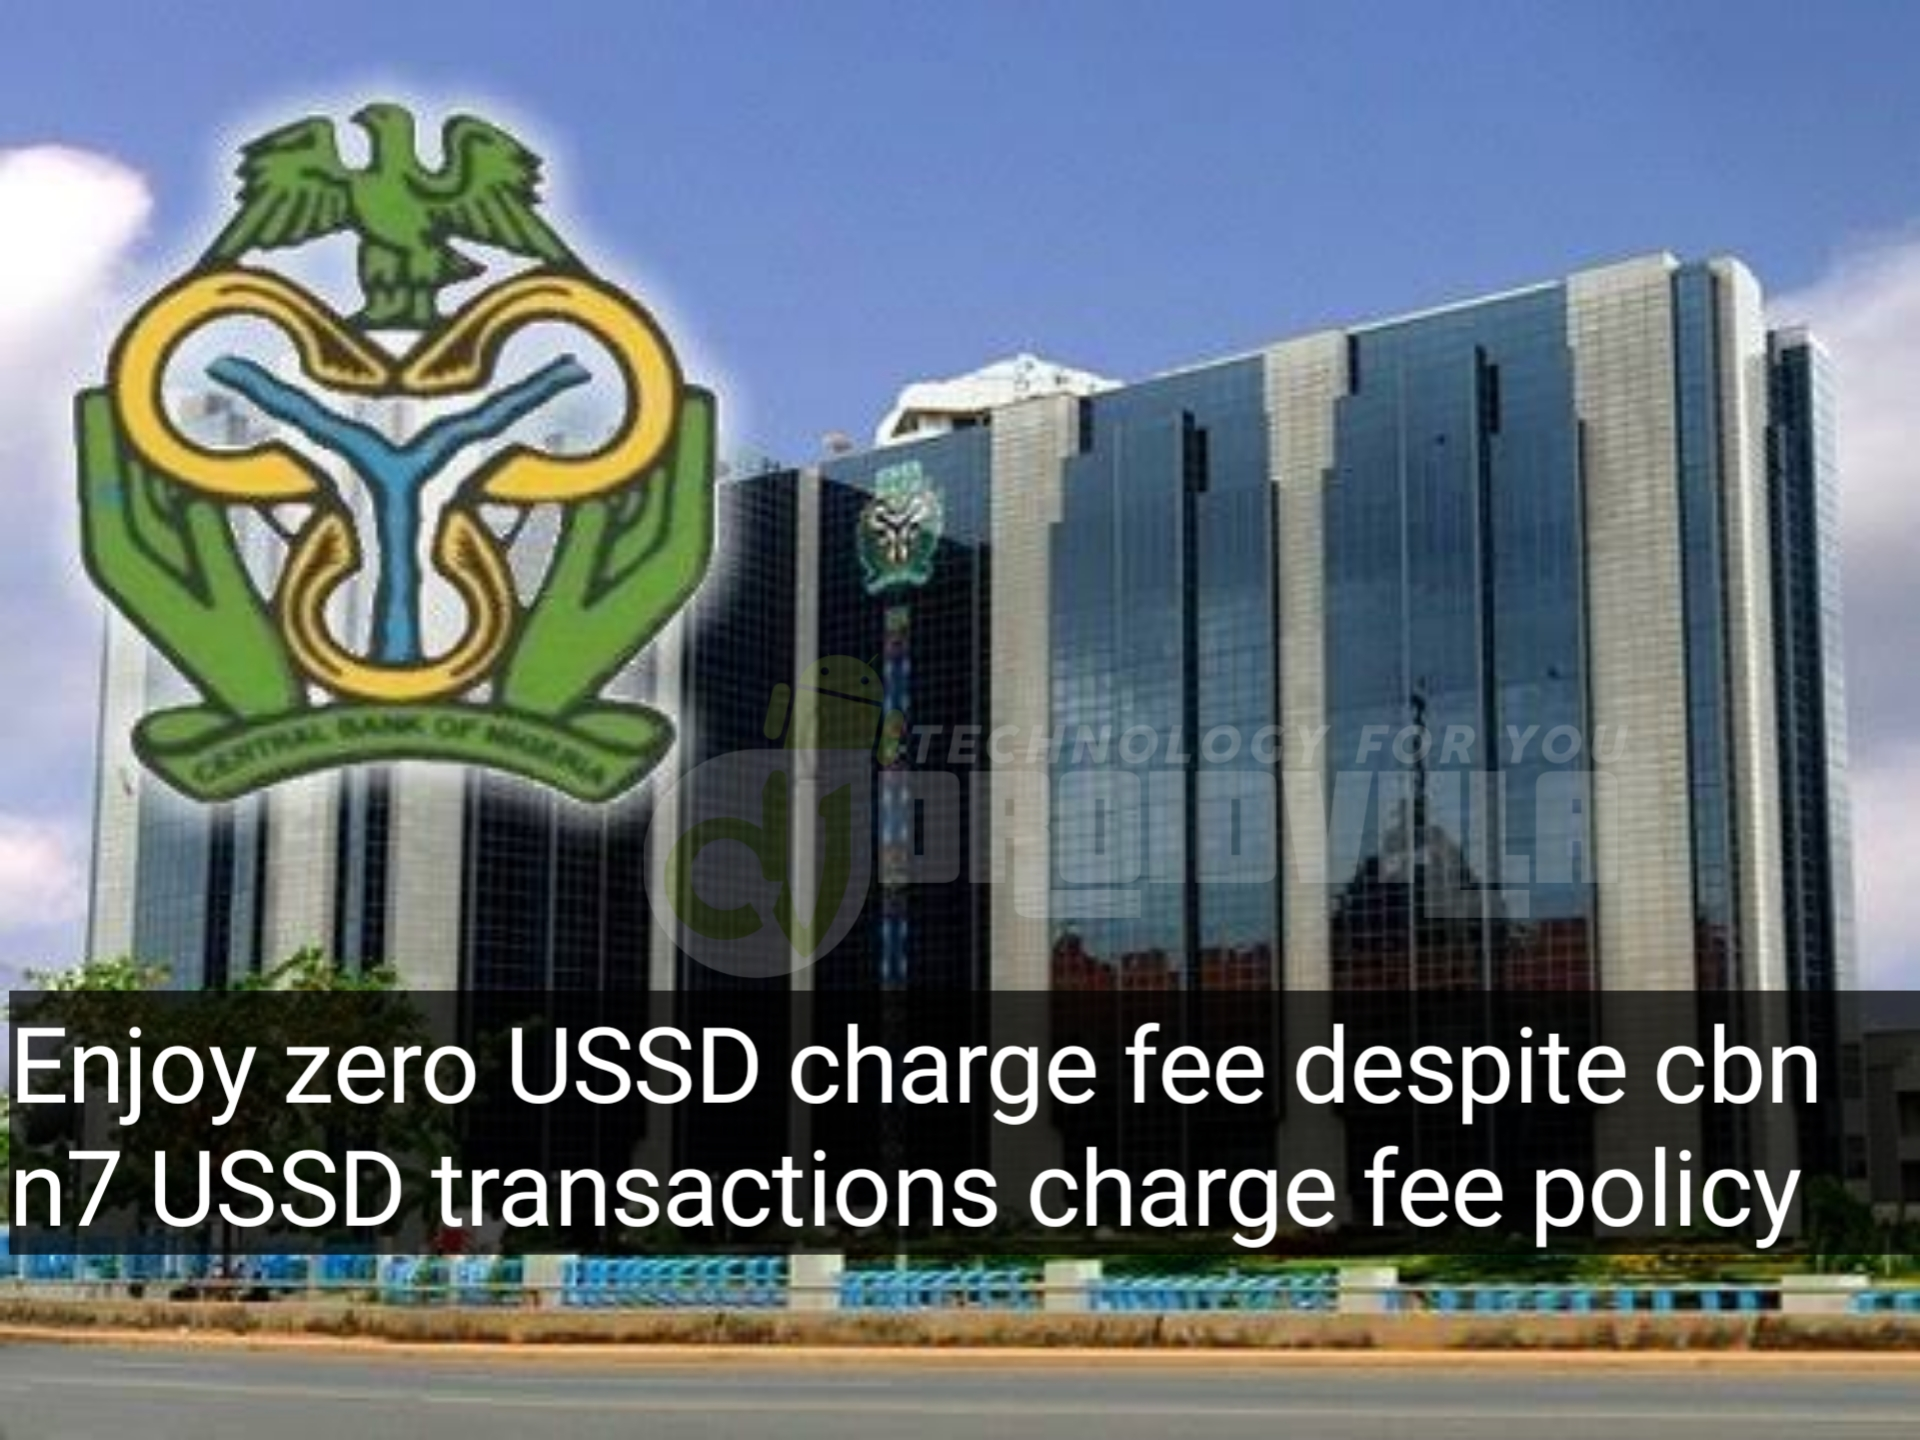 Enjoy zero USSD charge fee despite cbn n7 USSD transactions charge fee policy